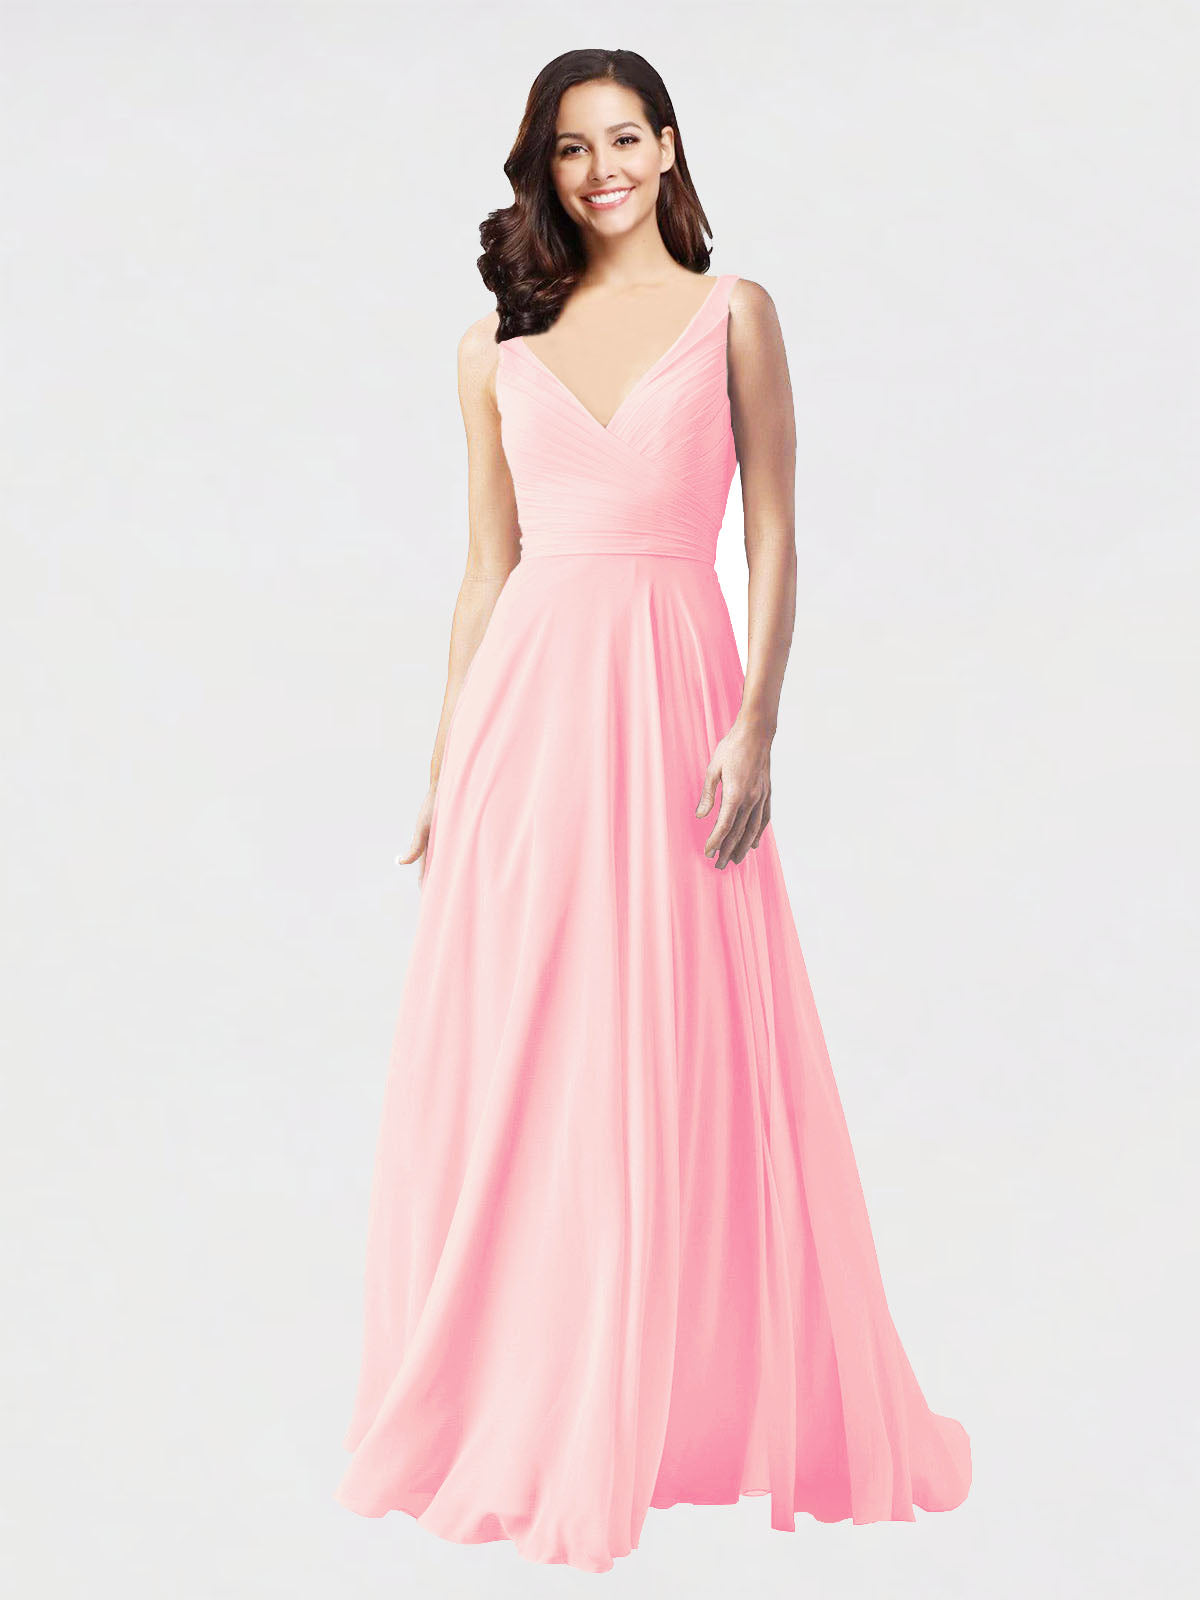 Long A-Line V-Neck Sleeveless Pink Chiffon Bridesmaid Dress Bernice